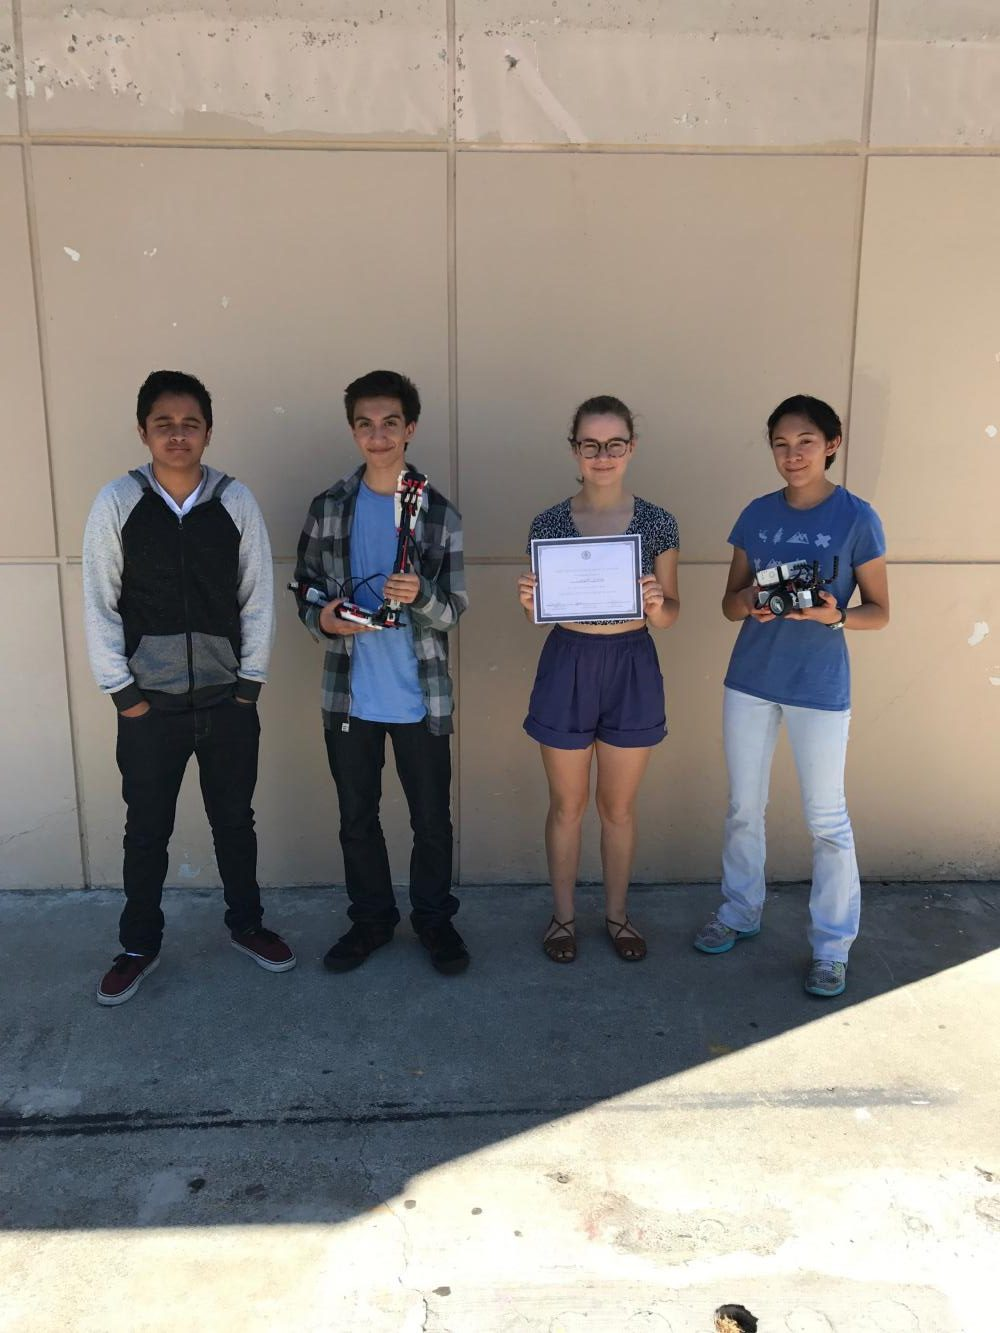 Congrats to these four winners for placing 1st in this years Kids Choice Awards! (Jesse Ruiz/Lion Tales)